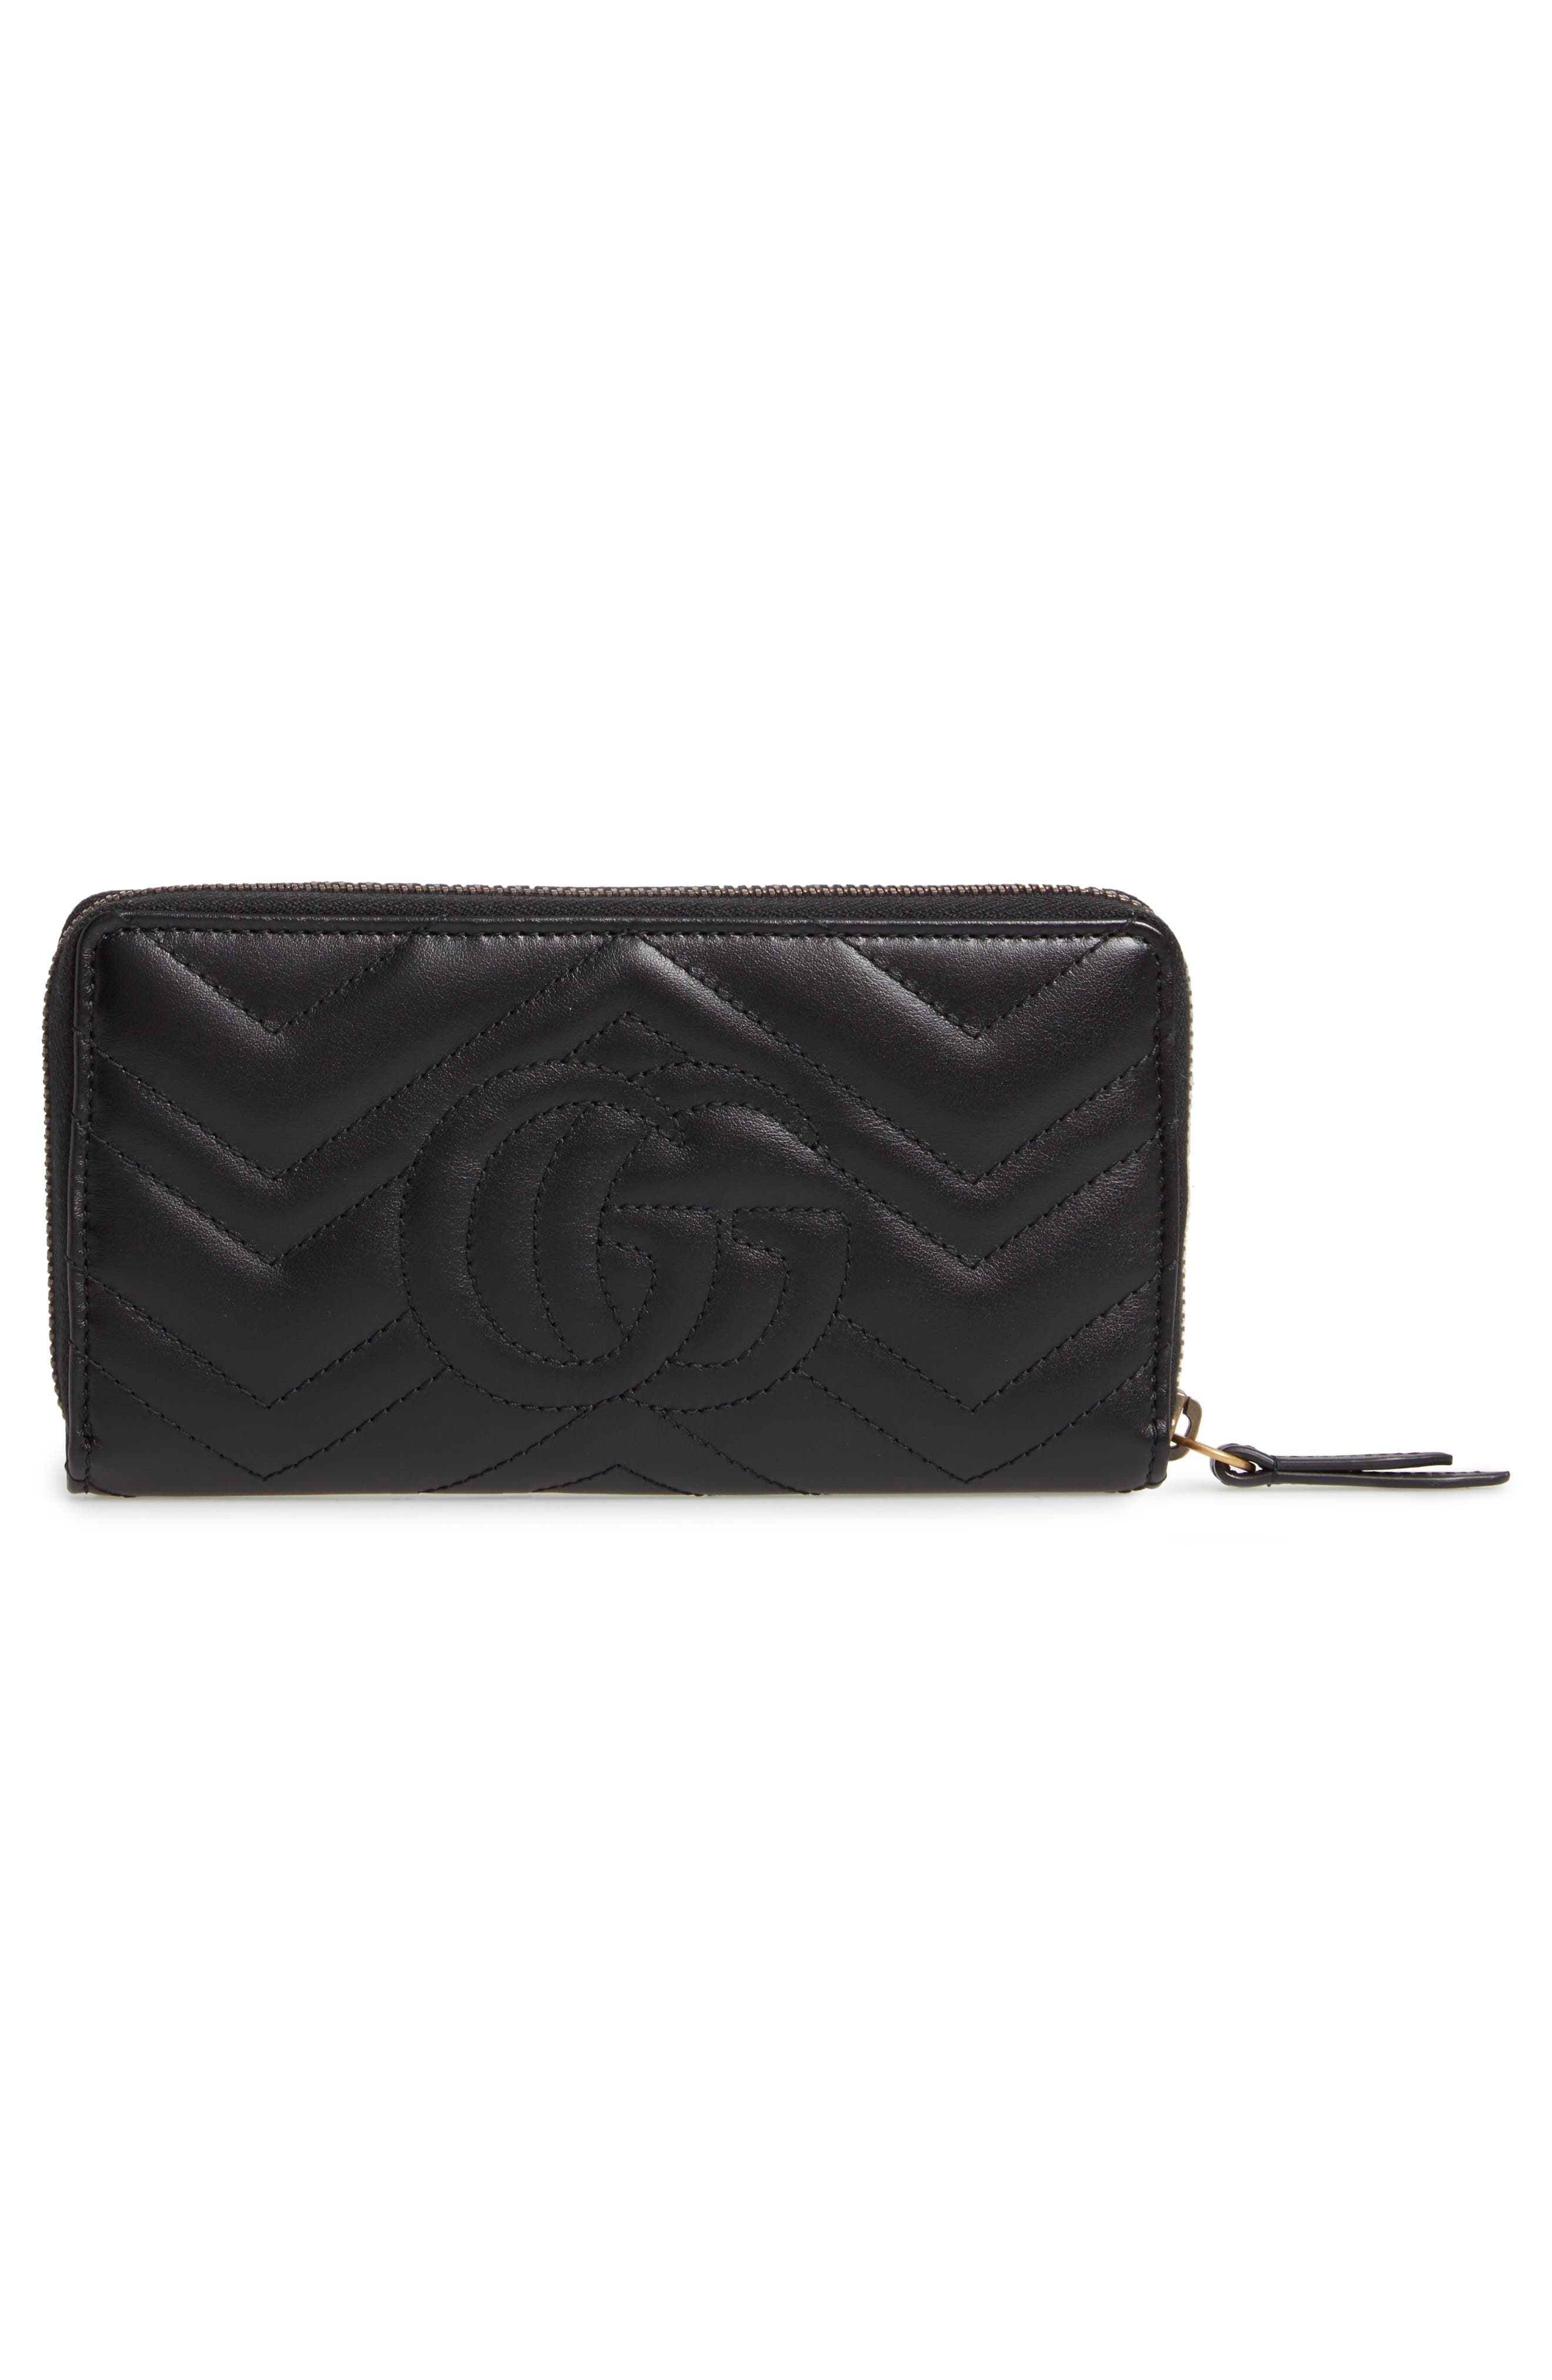 GUCCI,                             GG Marmont 2.0 Zip Around Wallet,                             Alternate thumbnail 3, color,                             NERO